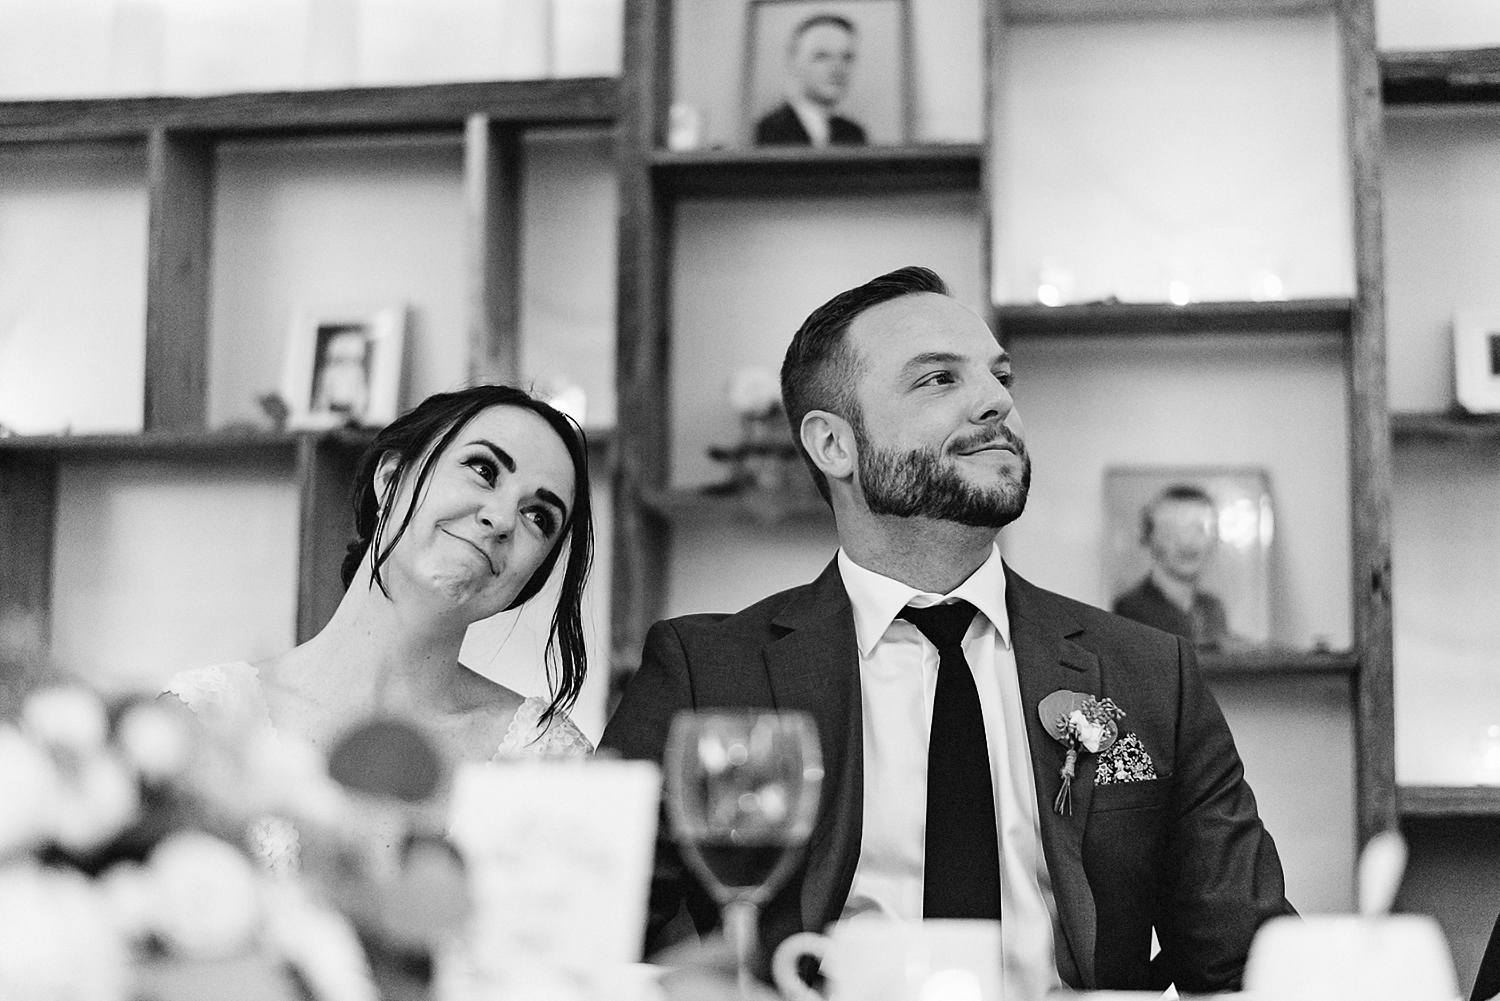 Best-Wedding-photographers-Toronto-NAtural-Candid-wedding-photography-Airship37-Sunset-Portrait-bride-and-veil-sunset-golden-light-toronto-skyline-portraits-candid-intimate-wedding-moment-speeches-groom-reaction.jpg